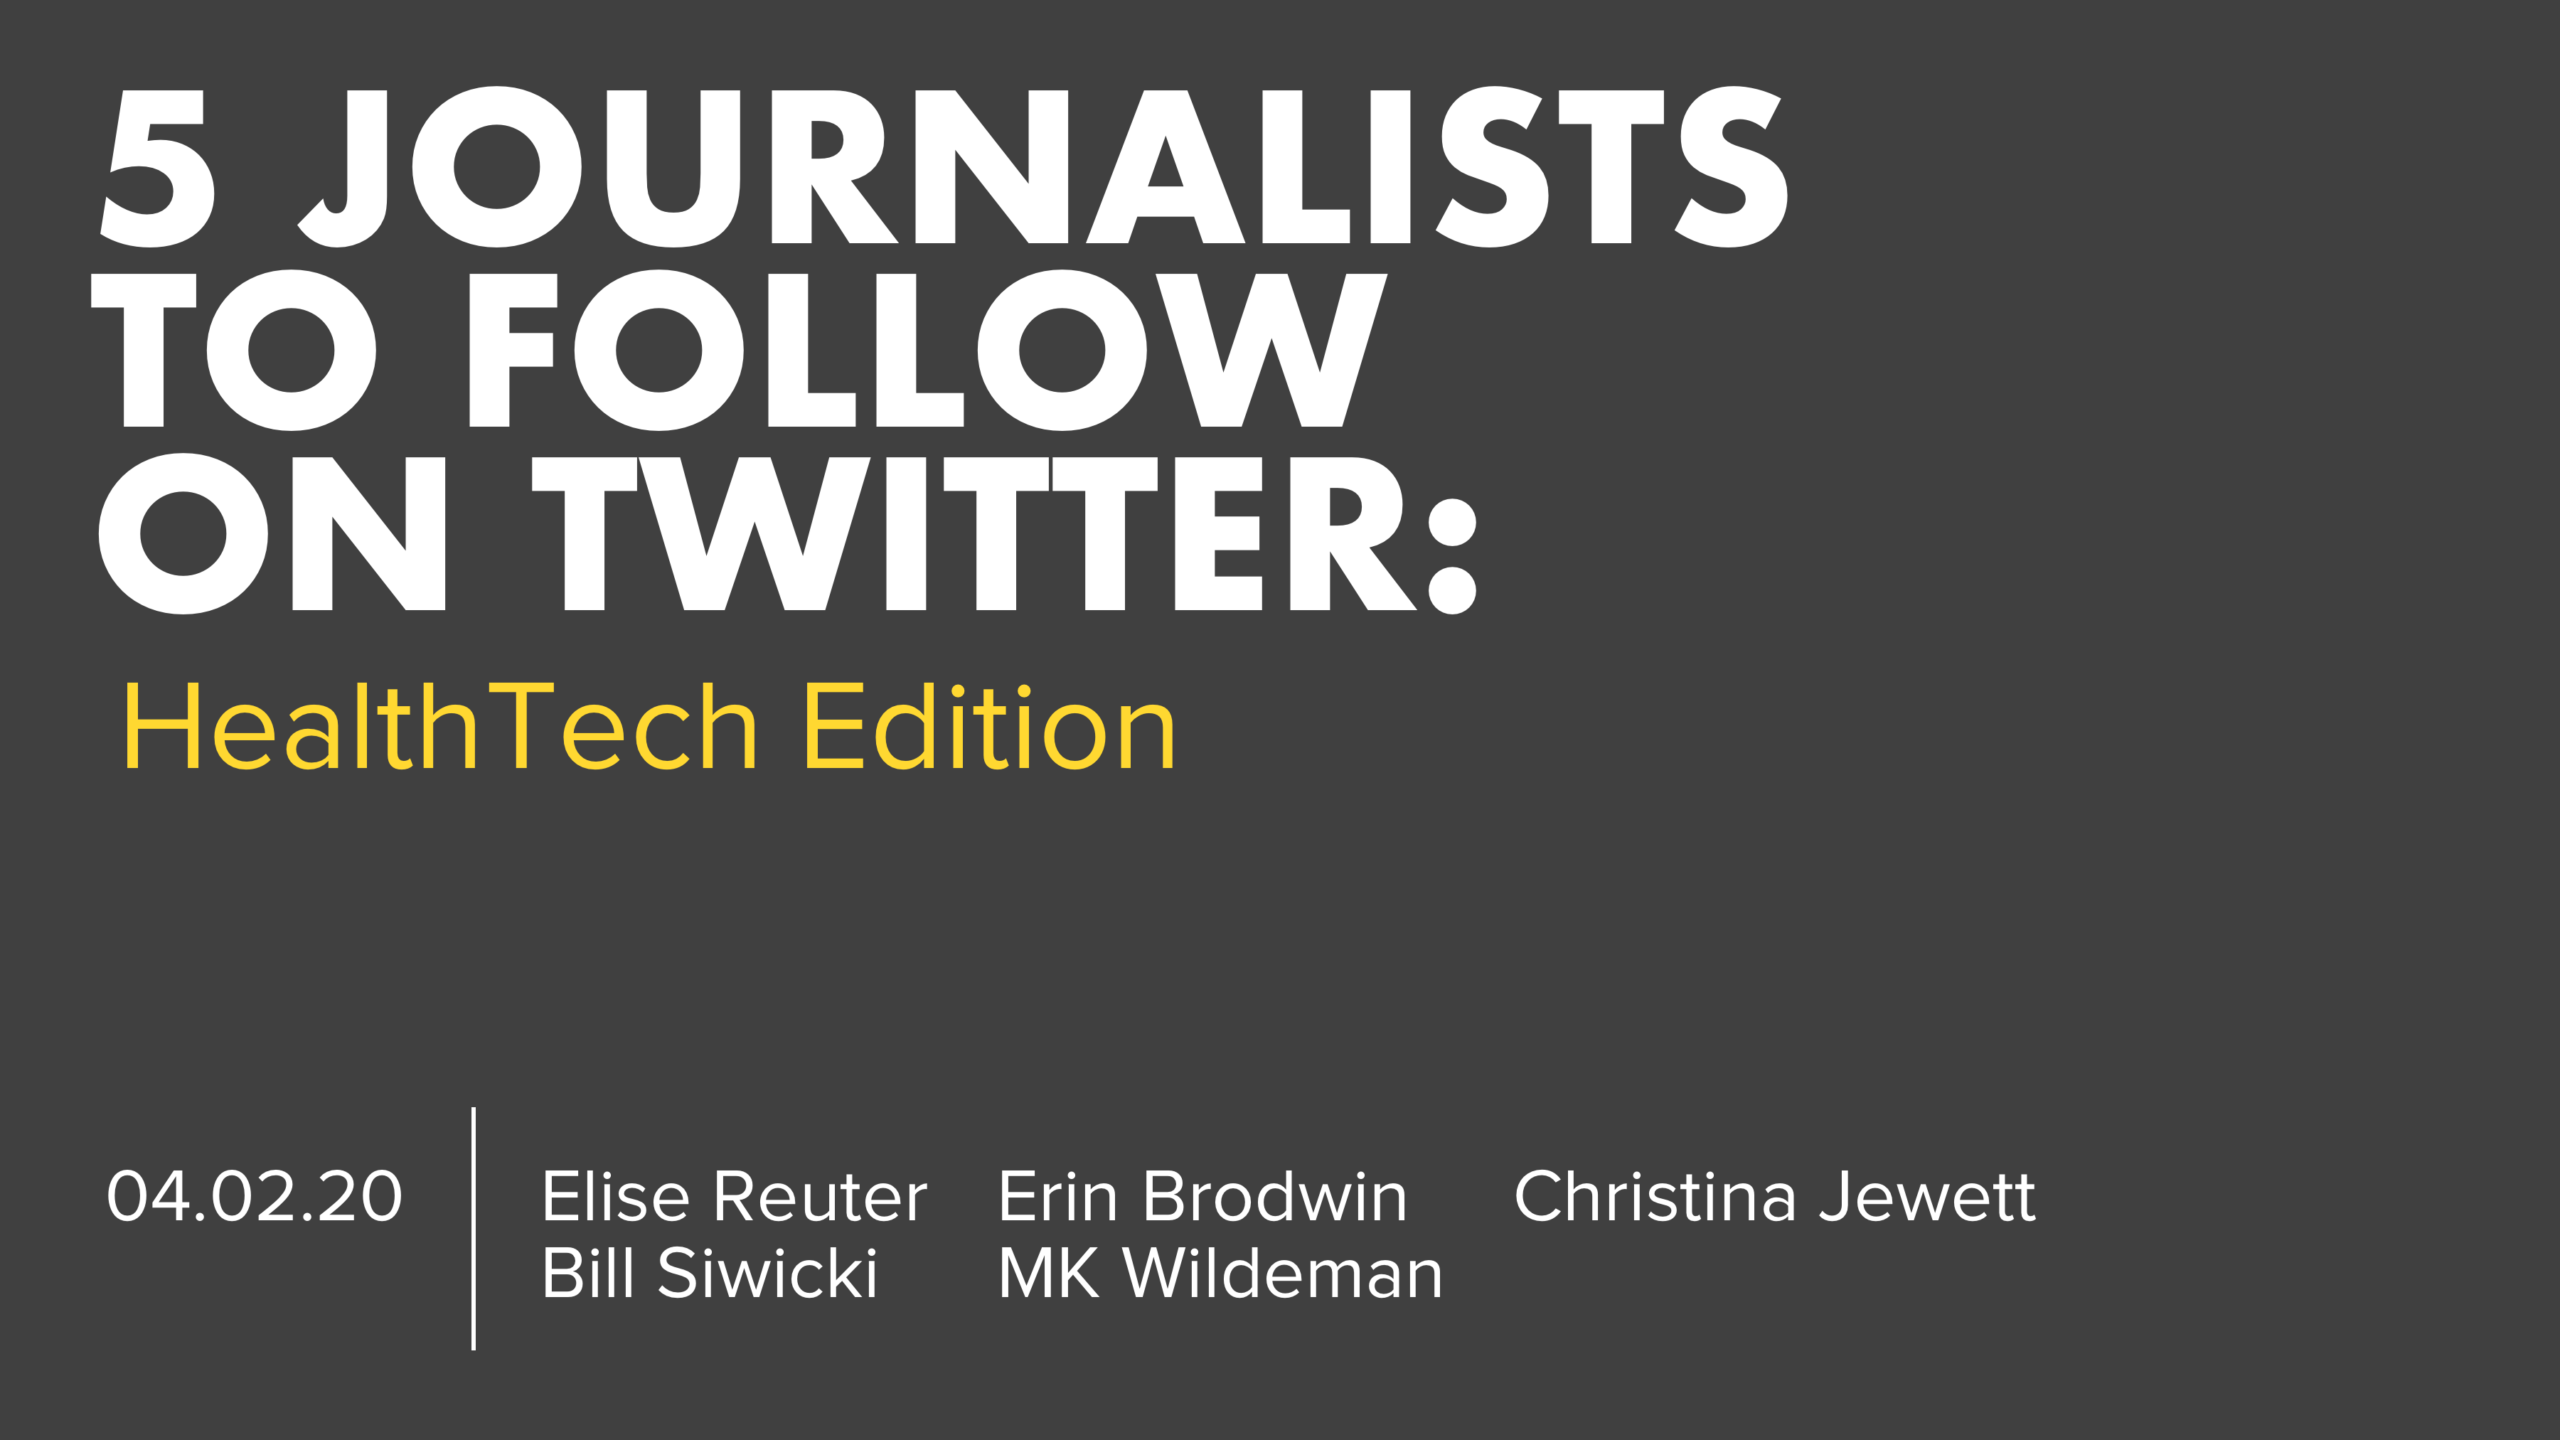 5 HealthTech Journalists Twitter